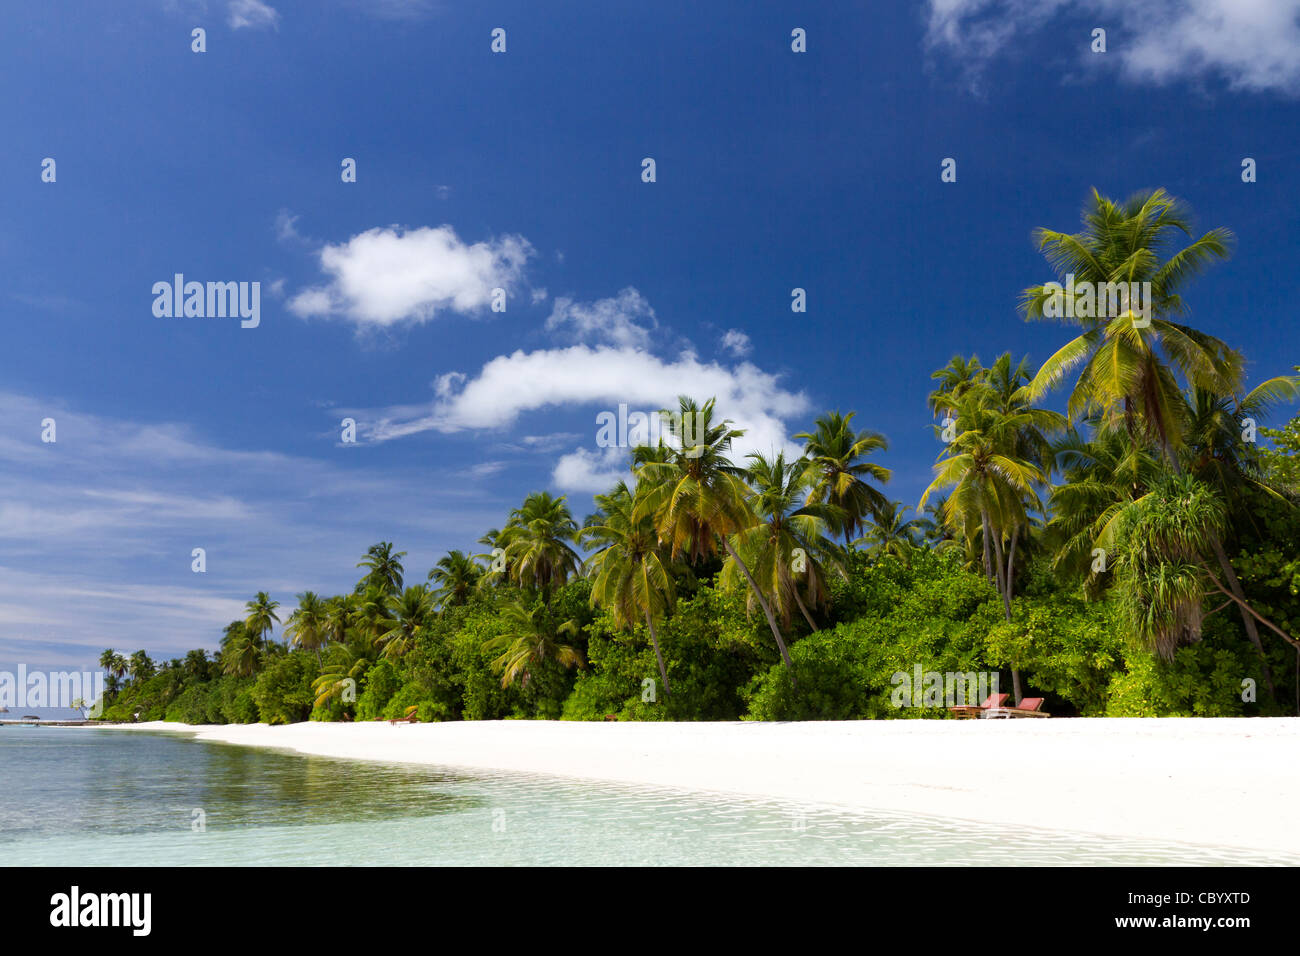 Medhufushi Island In Maldives Stock Photo 41795725 Alamy